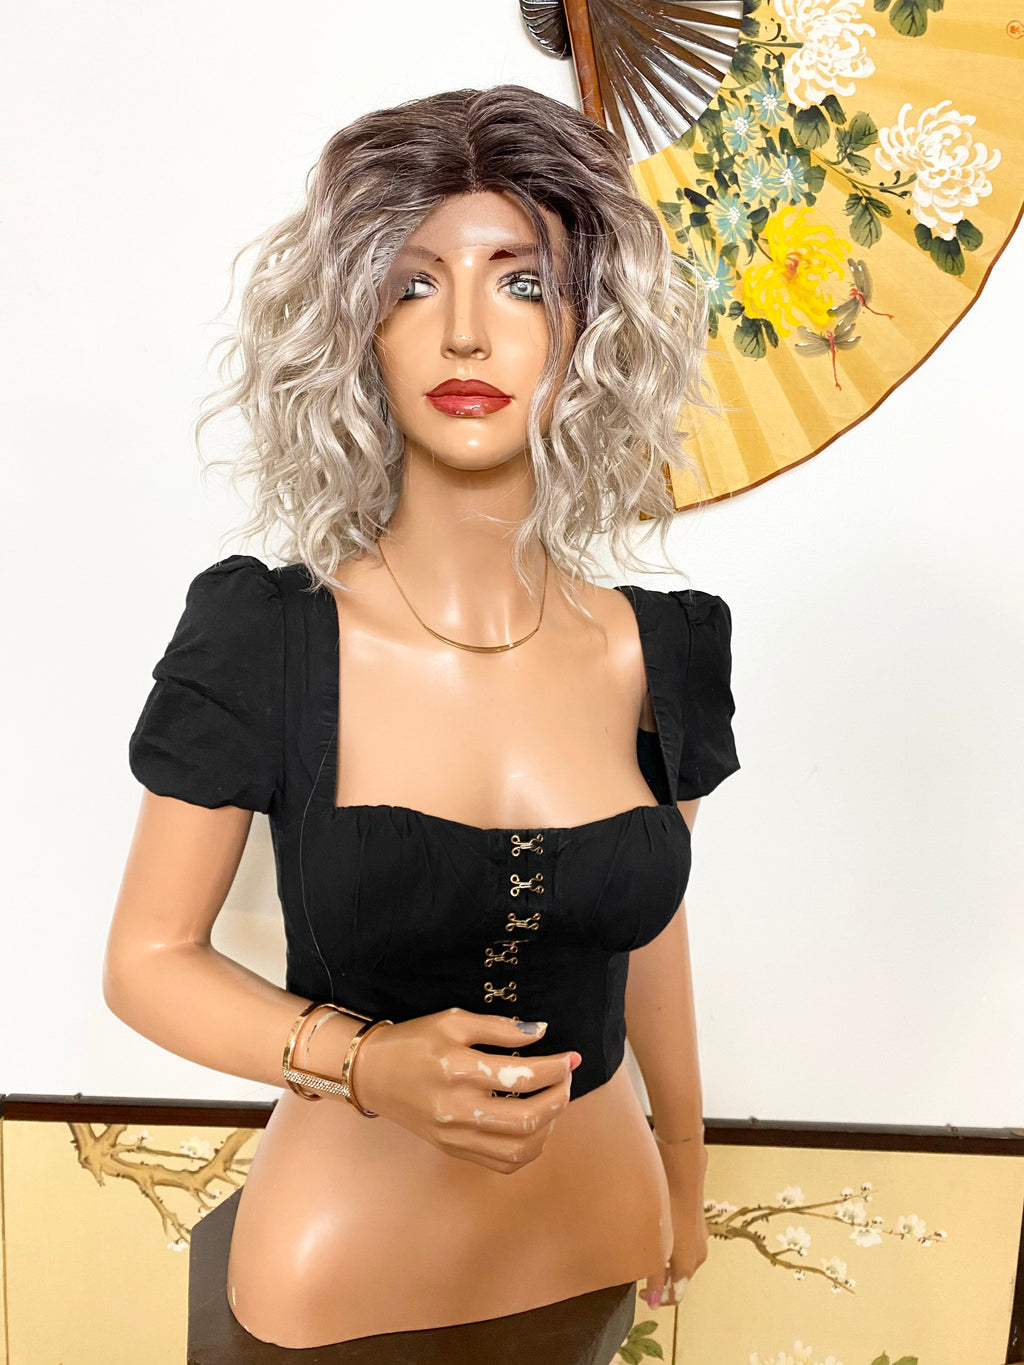 TORI* frosty gray wavy hair| LUXURIOUS ILLUSION *middle part* lace front wig 10""